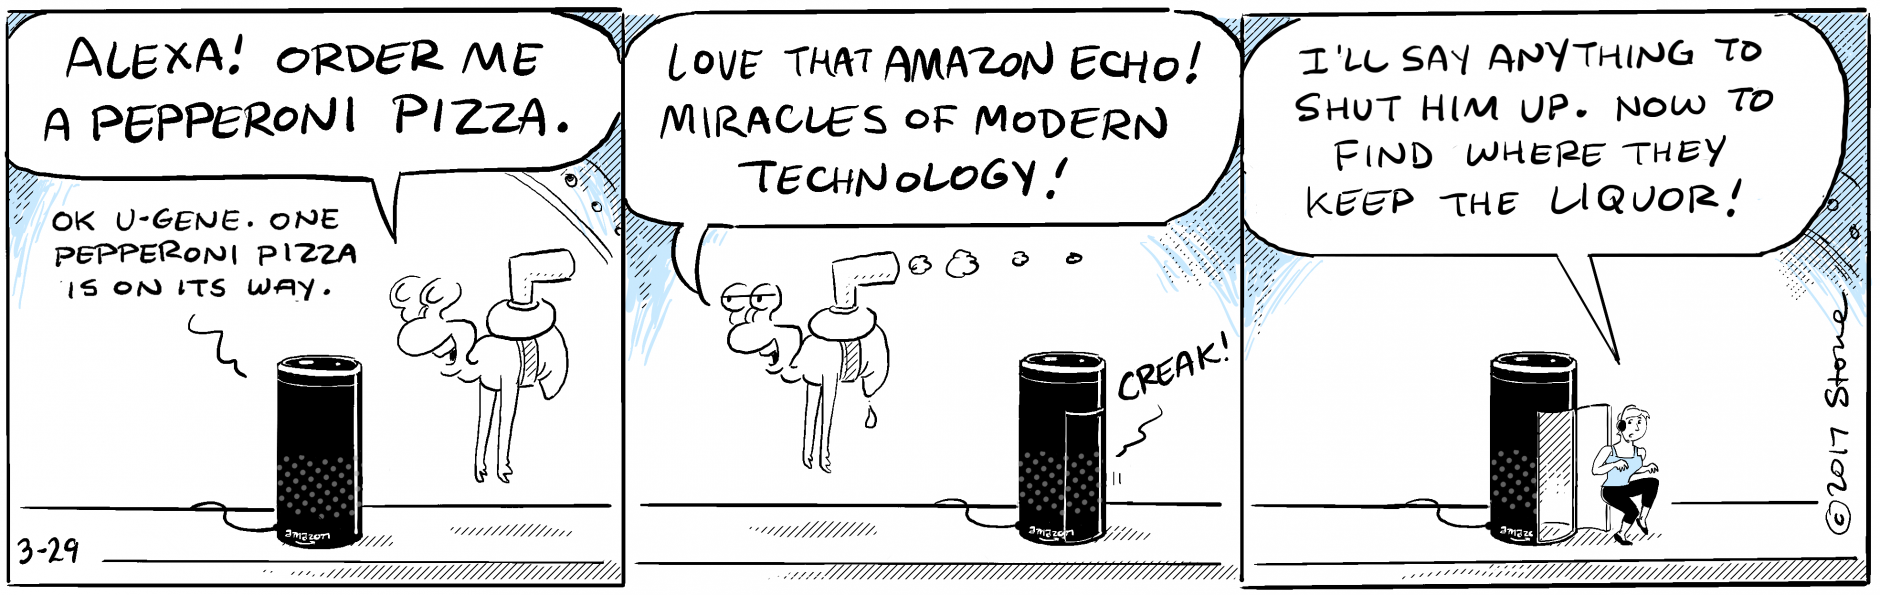 U-Gene marvels at the miracles of modern technology with his #AmazonEcho.